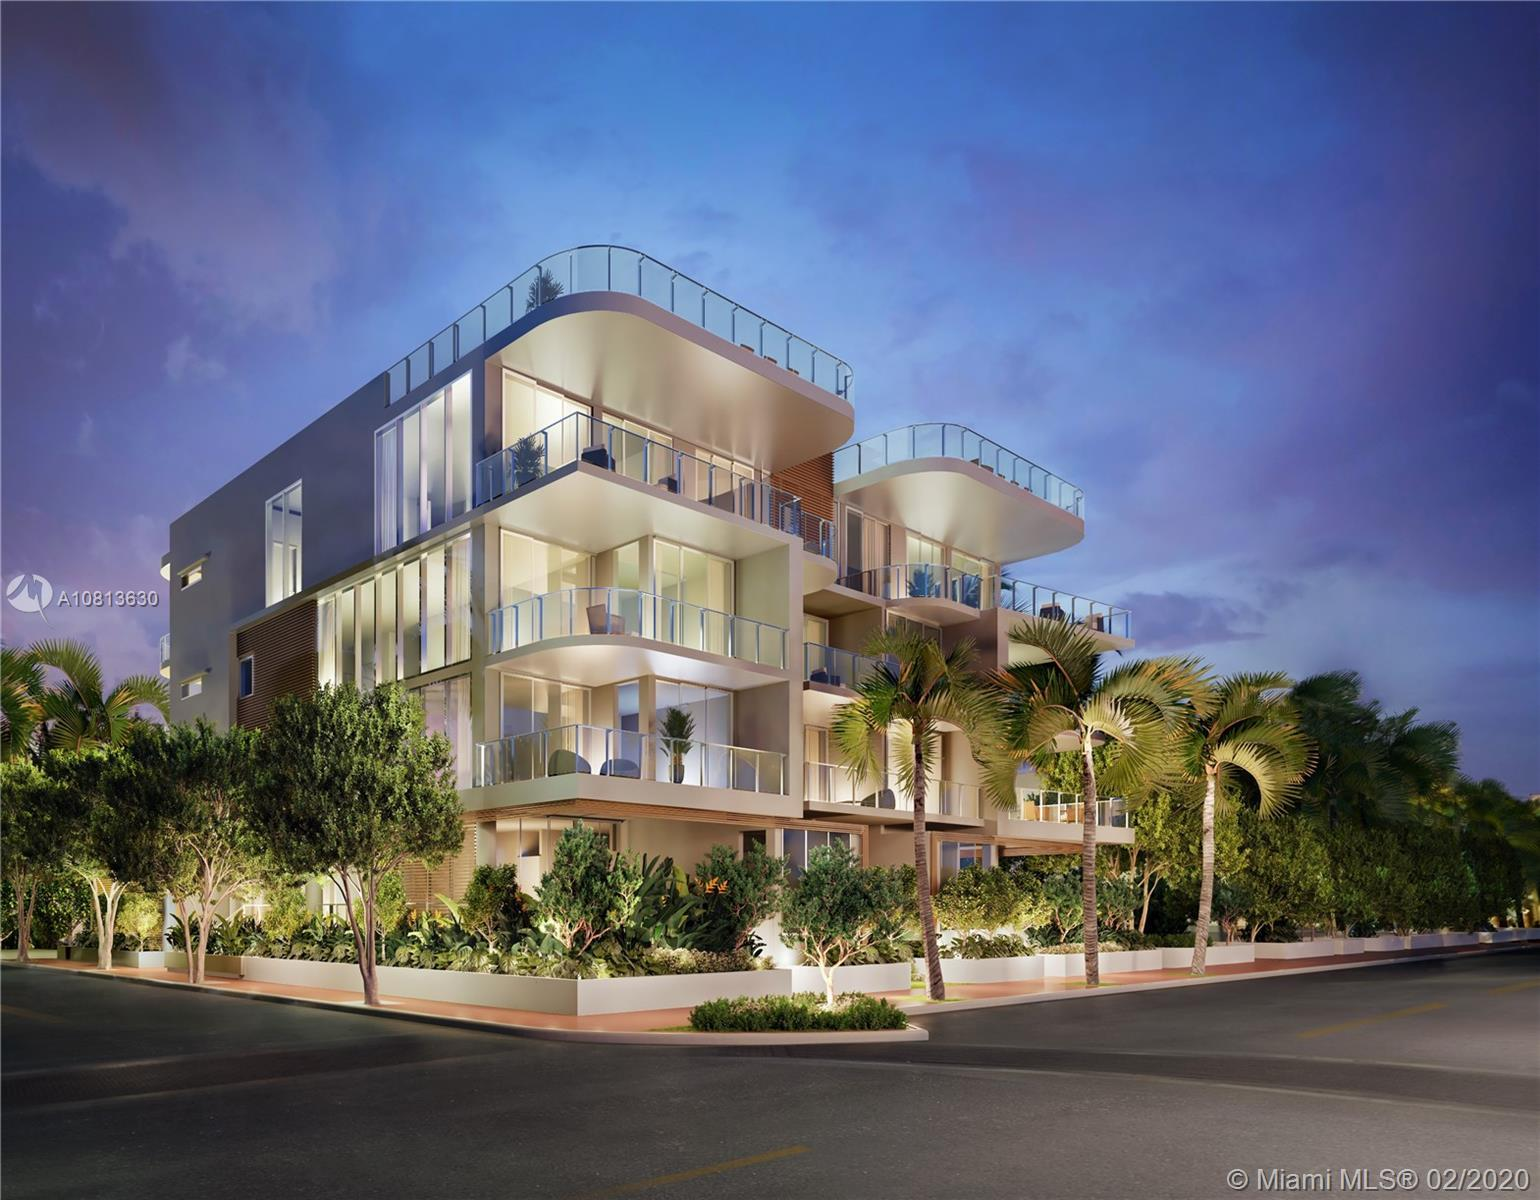 OCEAN PARK SOUTH BEACHoffers a limited collection of ten, two-to four bedroom luxury beach residenc